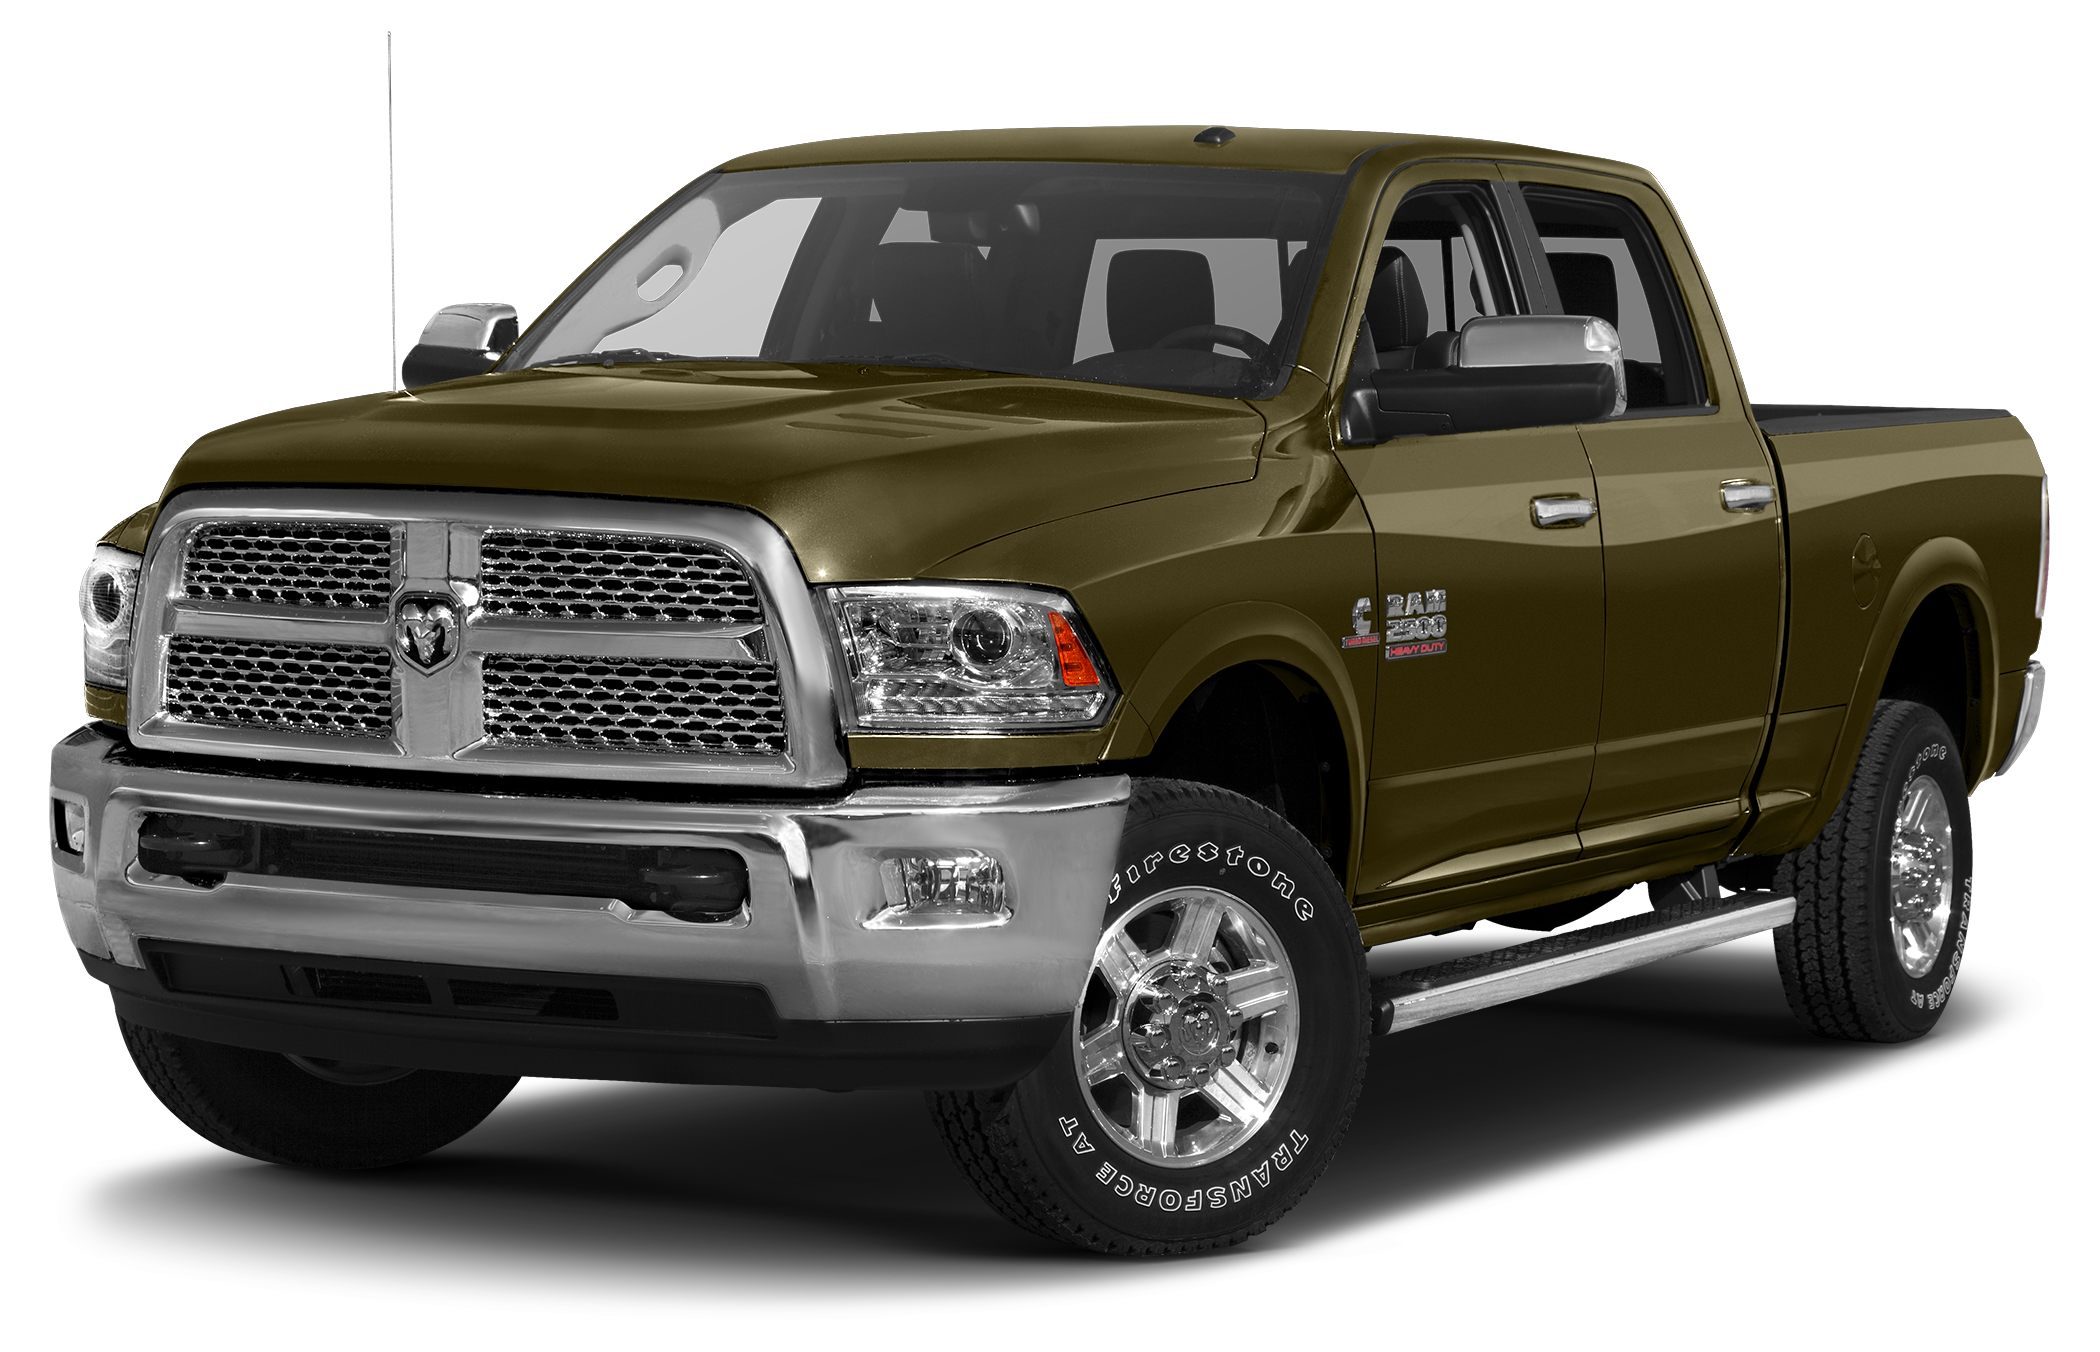 2014 RAM 2500 SLT Lake Keowee Chrysler Dodge Jeep is excited to offer this 2014 Ram 2500Why gambl